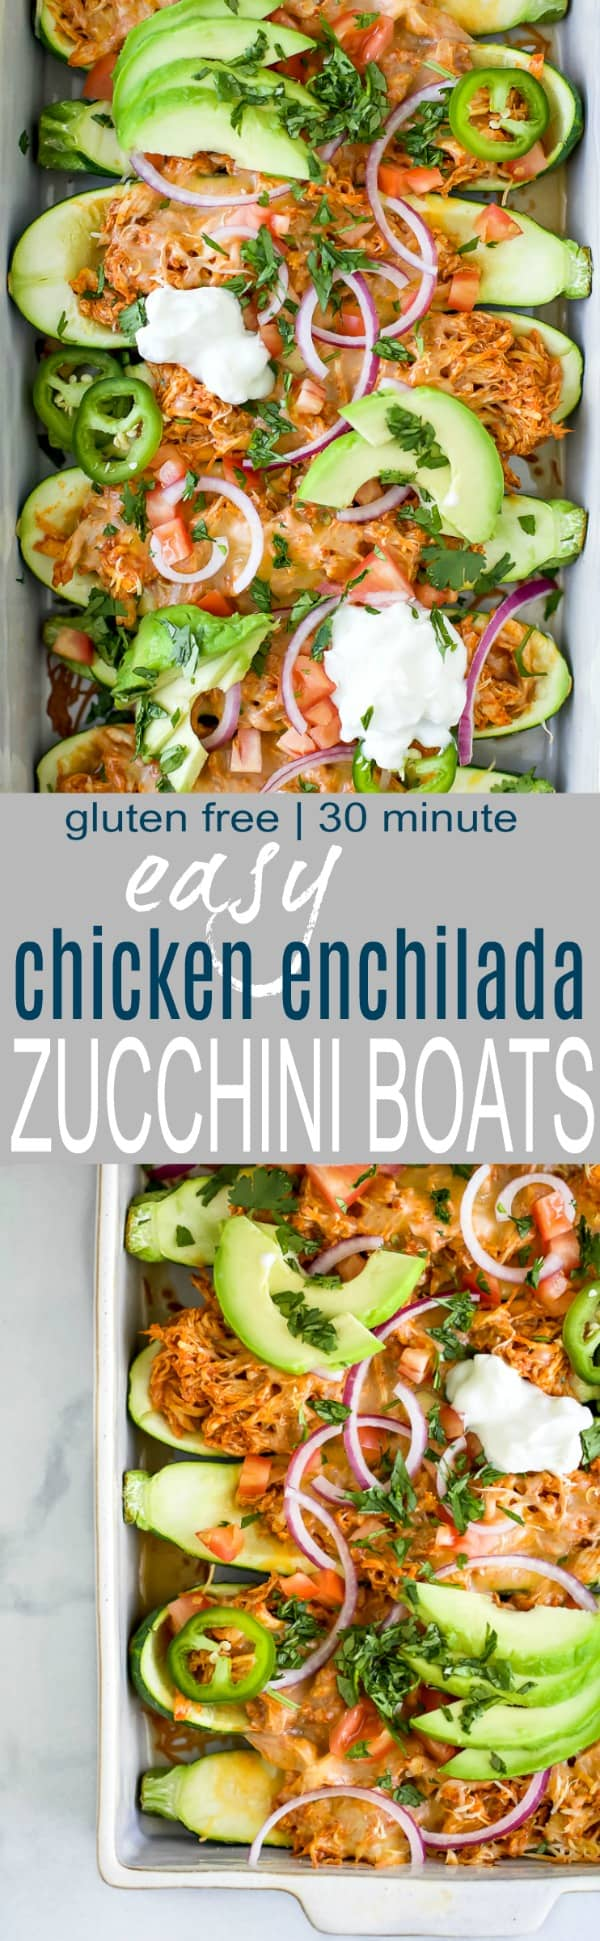 Easy Chicken Enchilada Zucchini Boats with red chili sauce and melted cheese.  A 30 minute meal that's gluten free, low carb, high protein and perfect for a weeknight dinner.